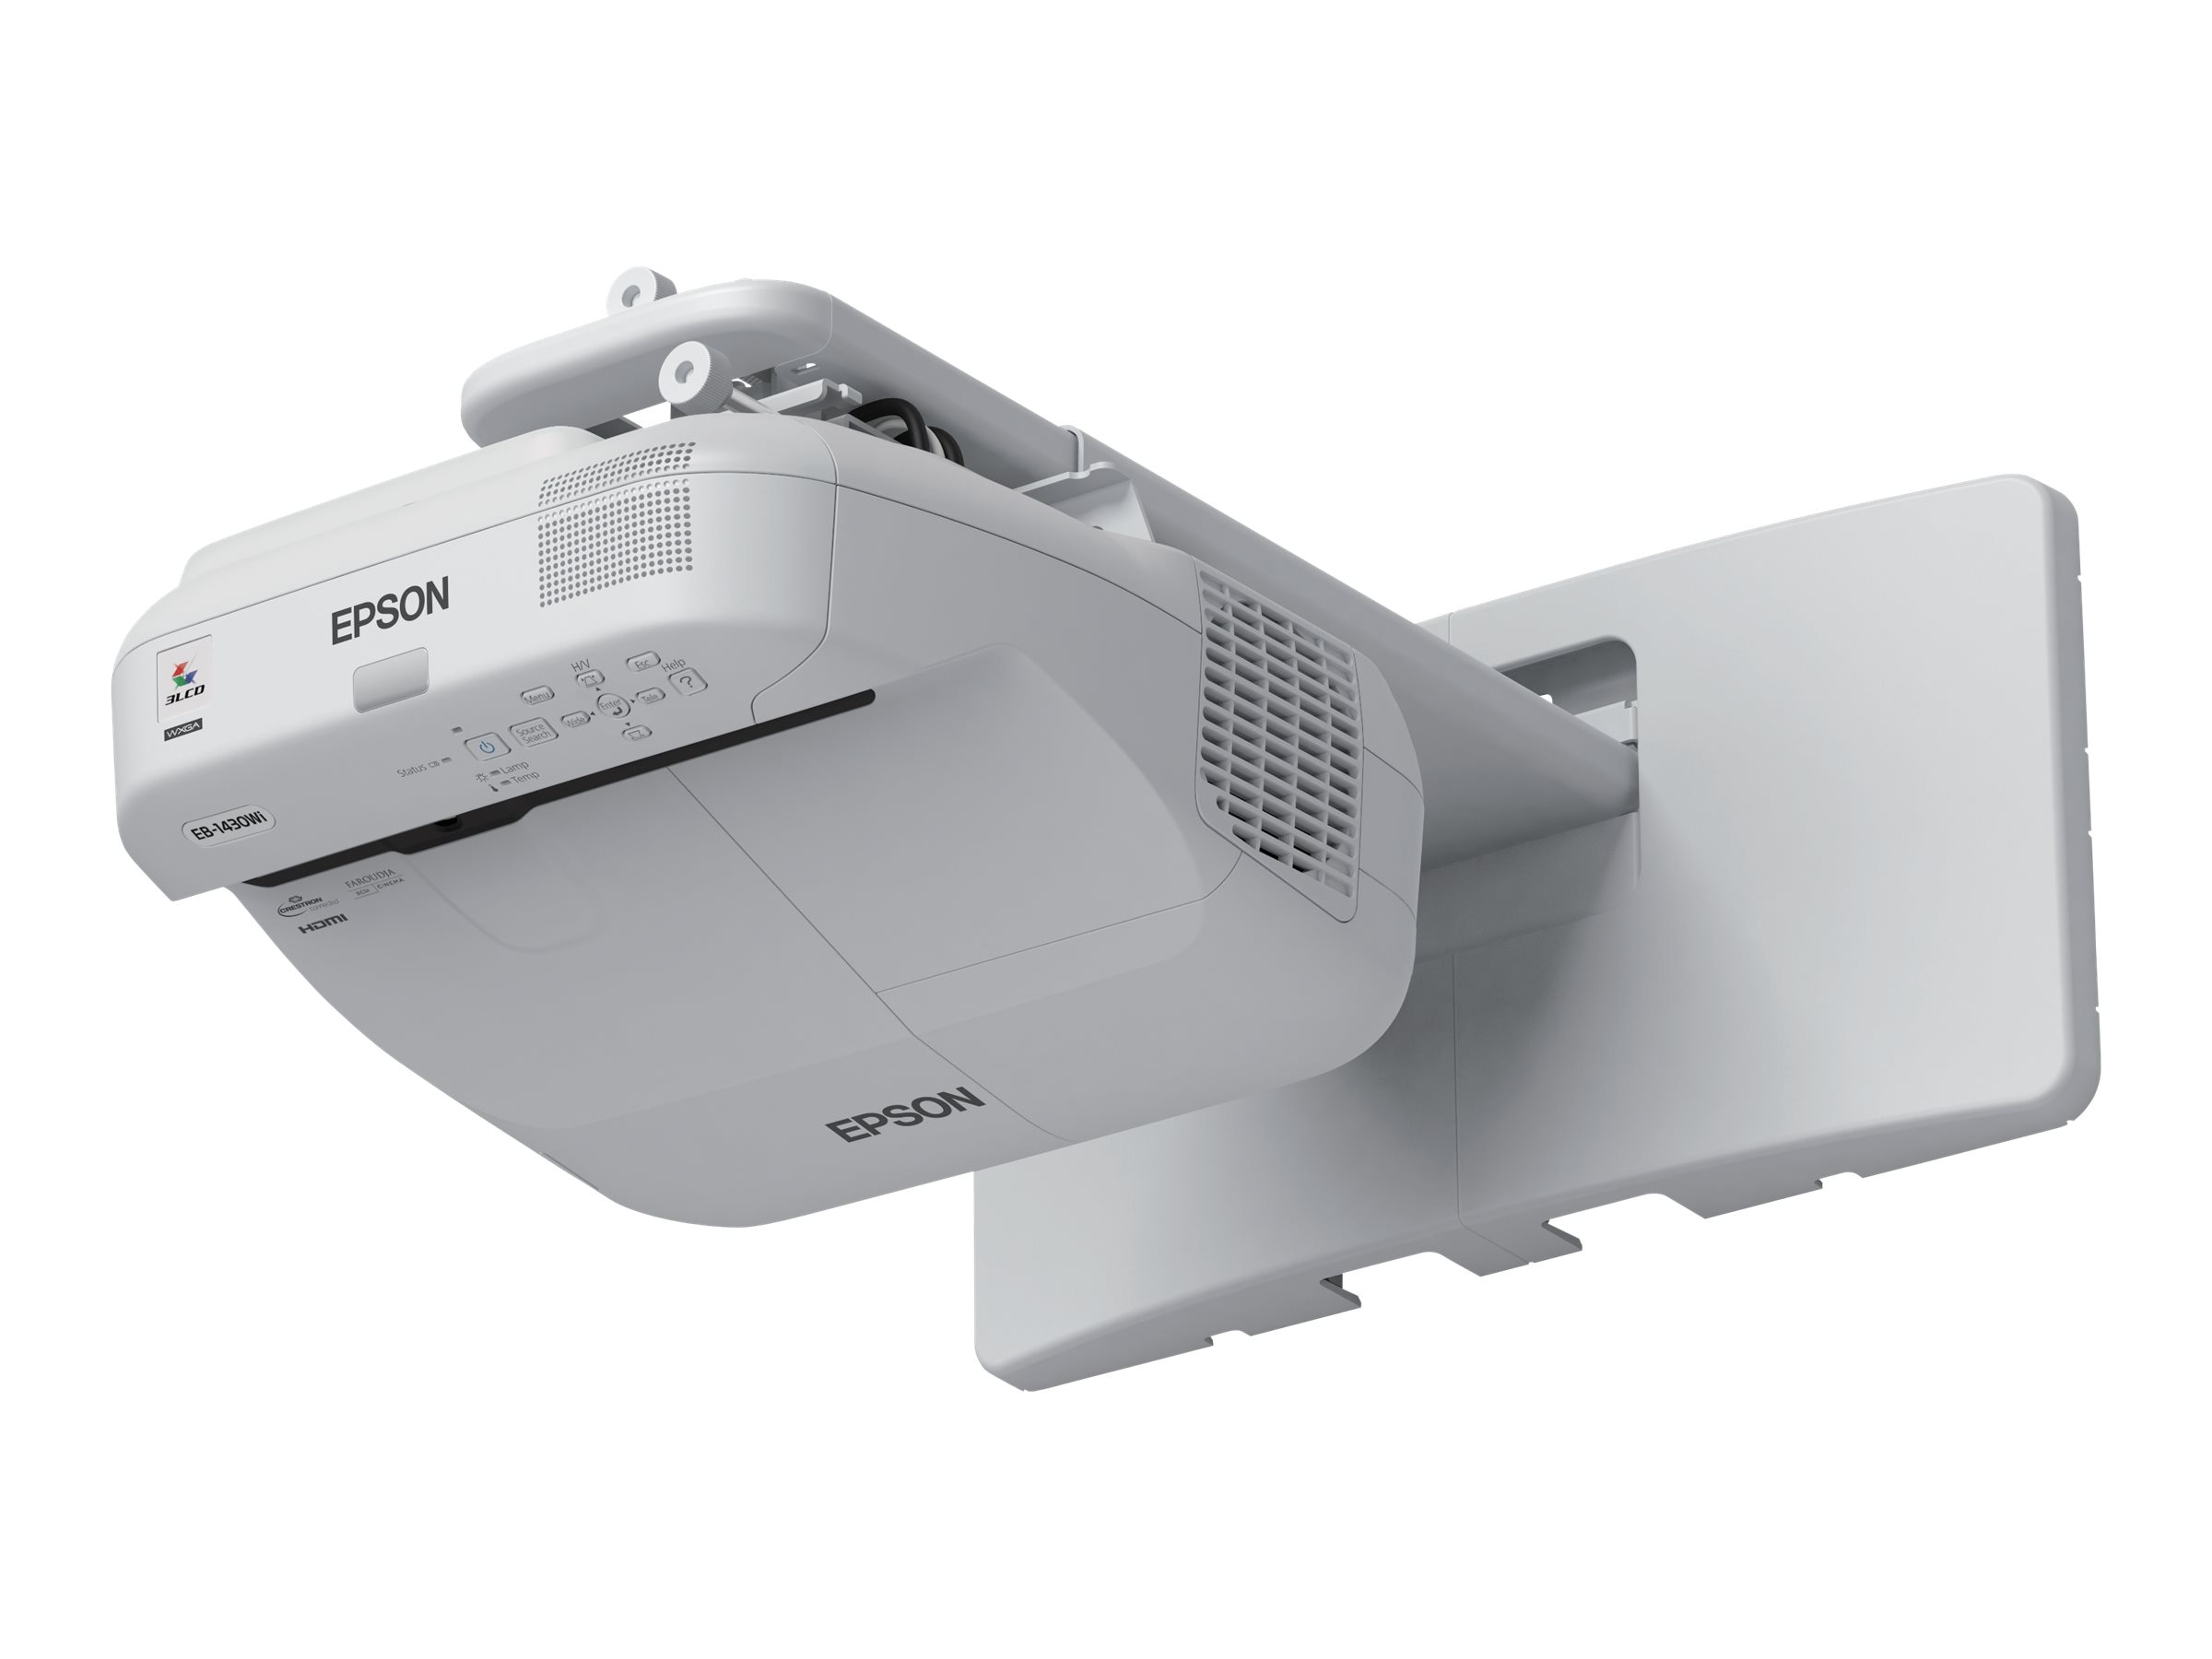 Epson BrightLink Pro 1420Wi Interactive Projector, 3300 Lumens, White (Demo), V11H612520-D, 17740662, Projectors